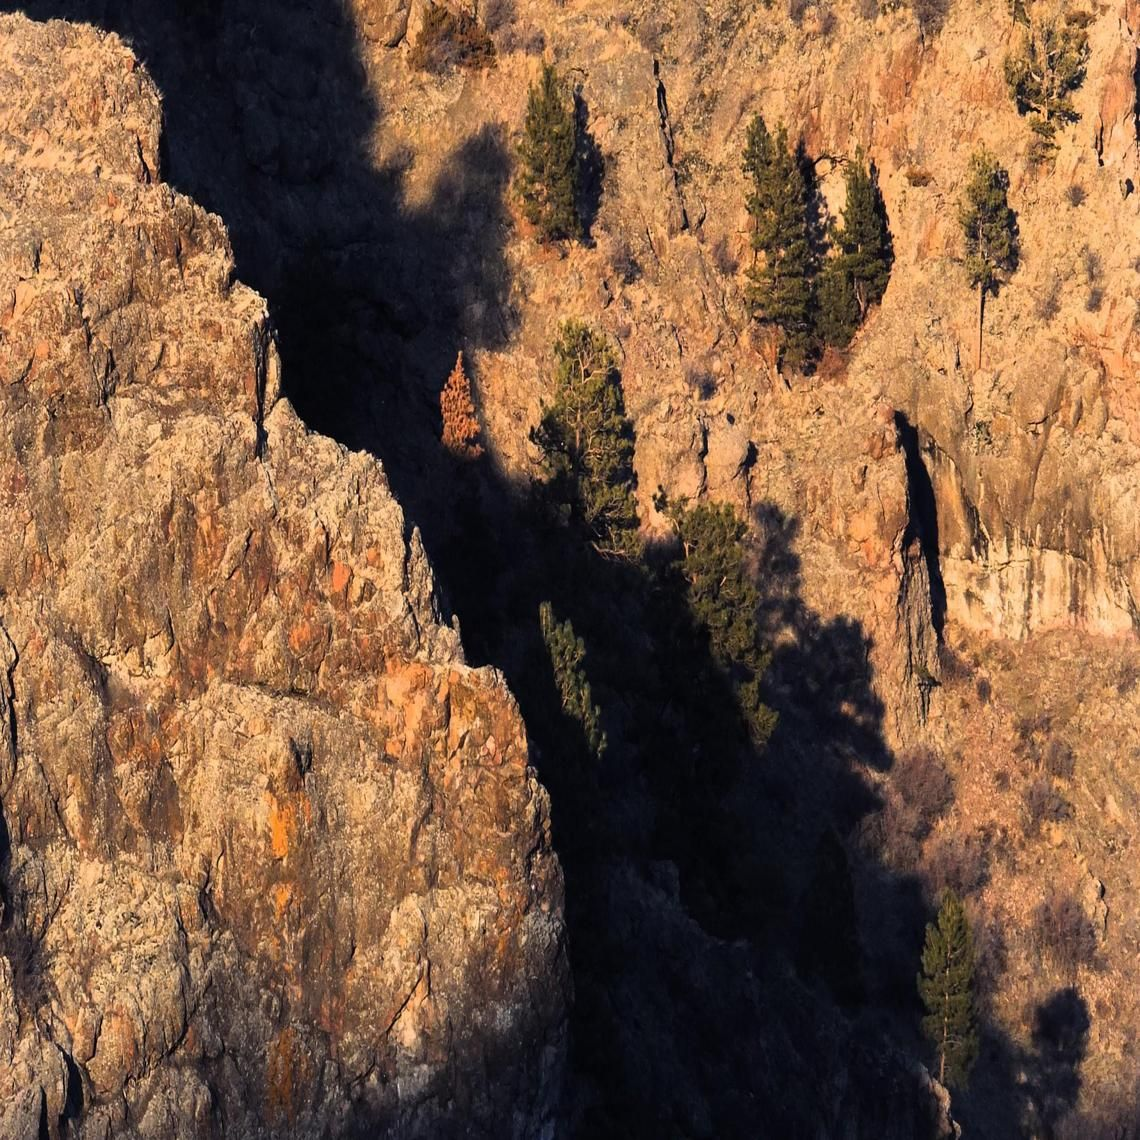 Trees in a canyon